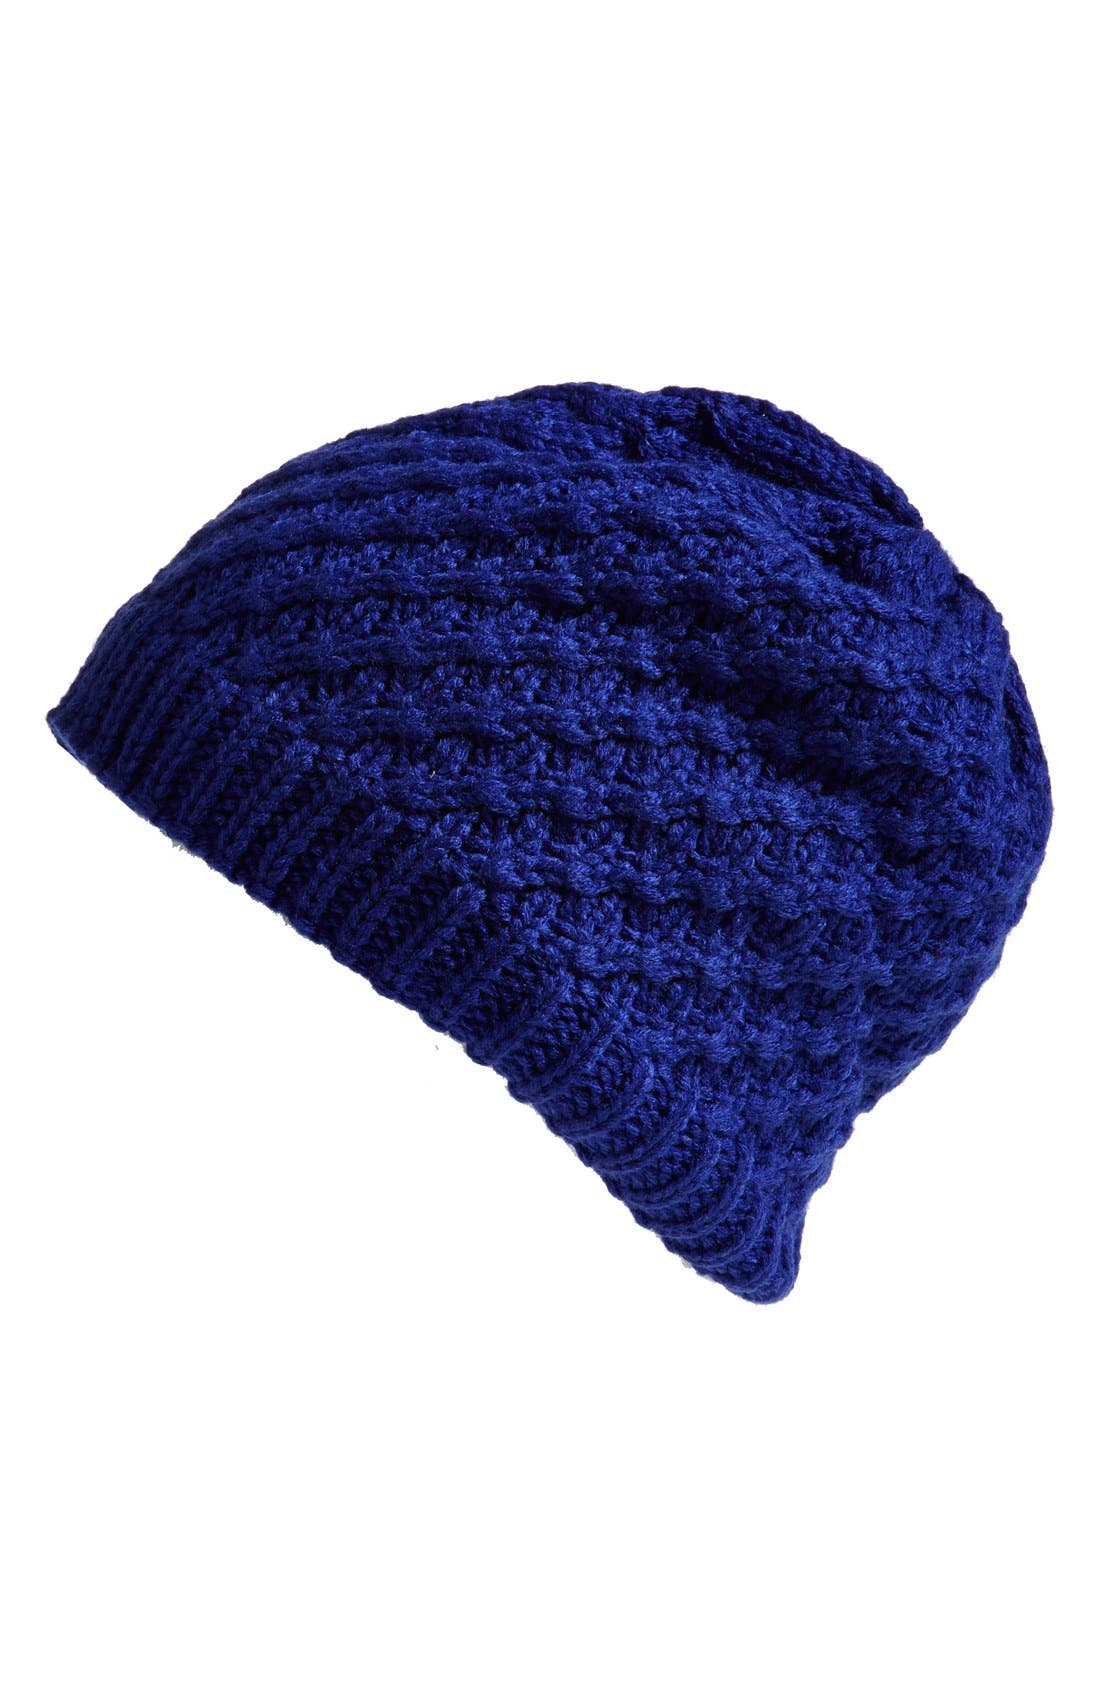 Alternate Image 1 Selected - Under Armour 'Coffee Run' Cable Knit Beanie